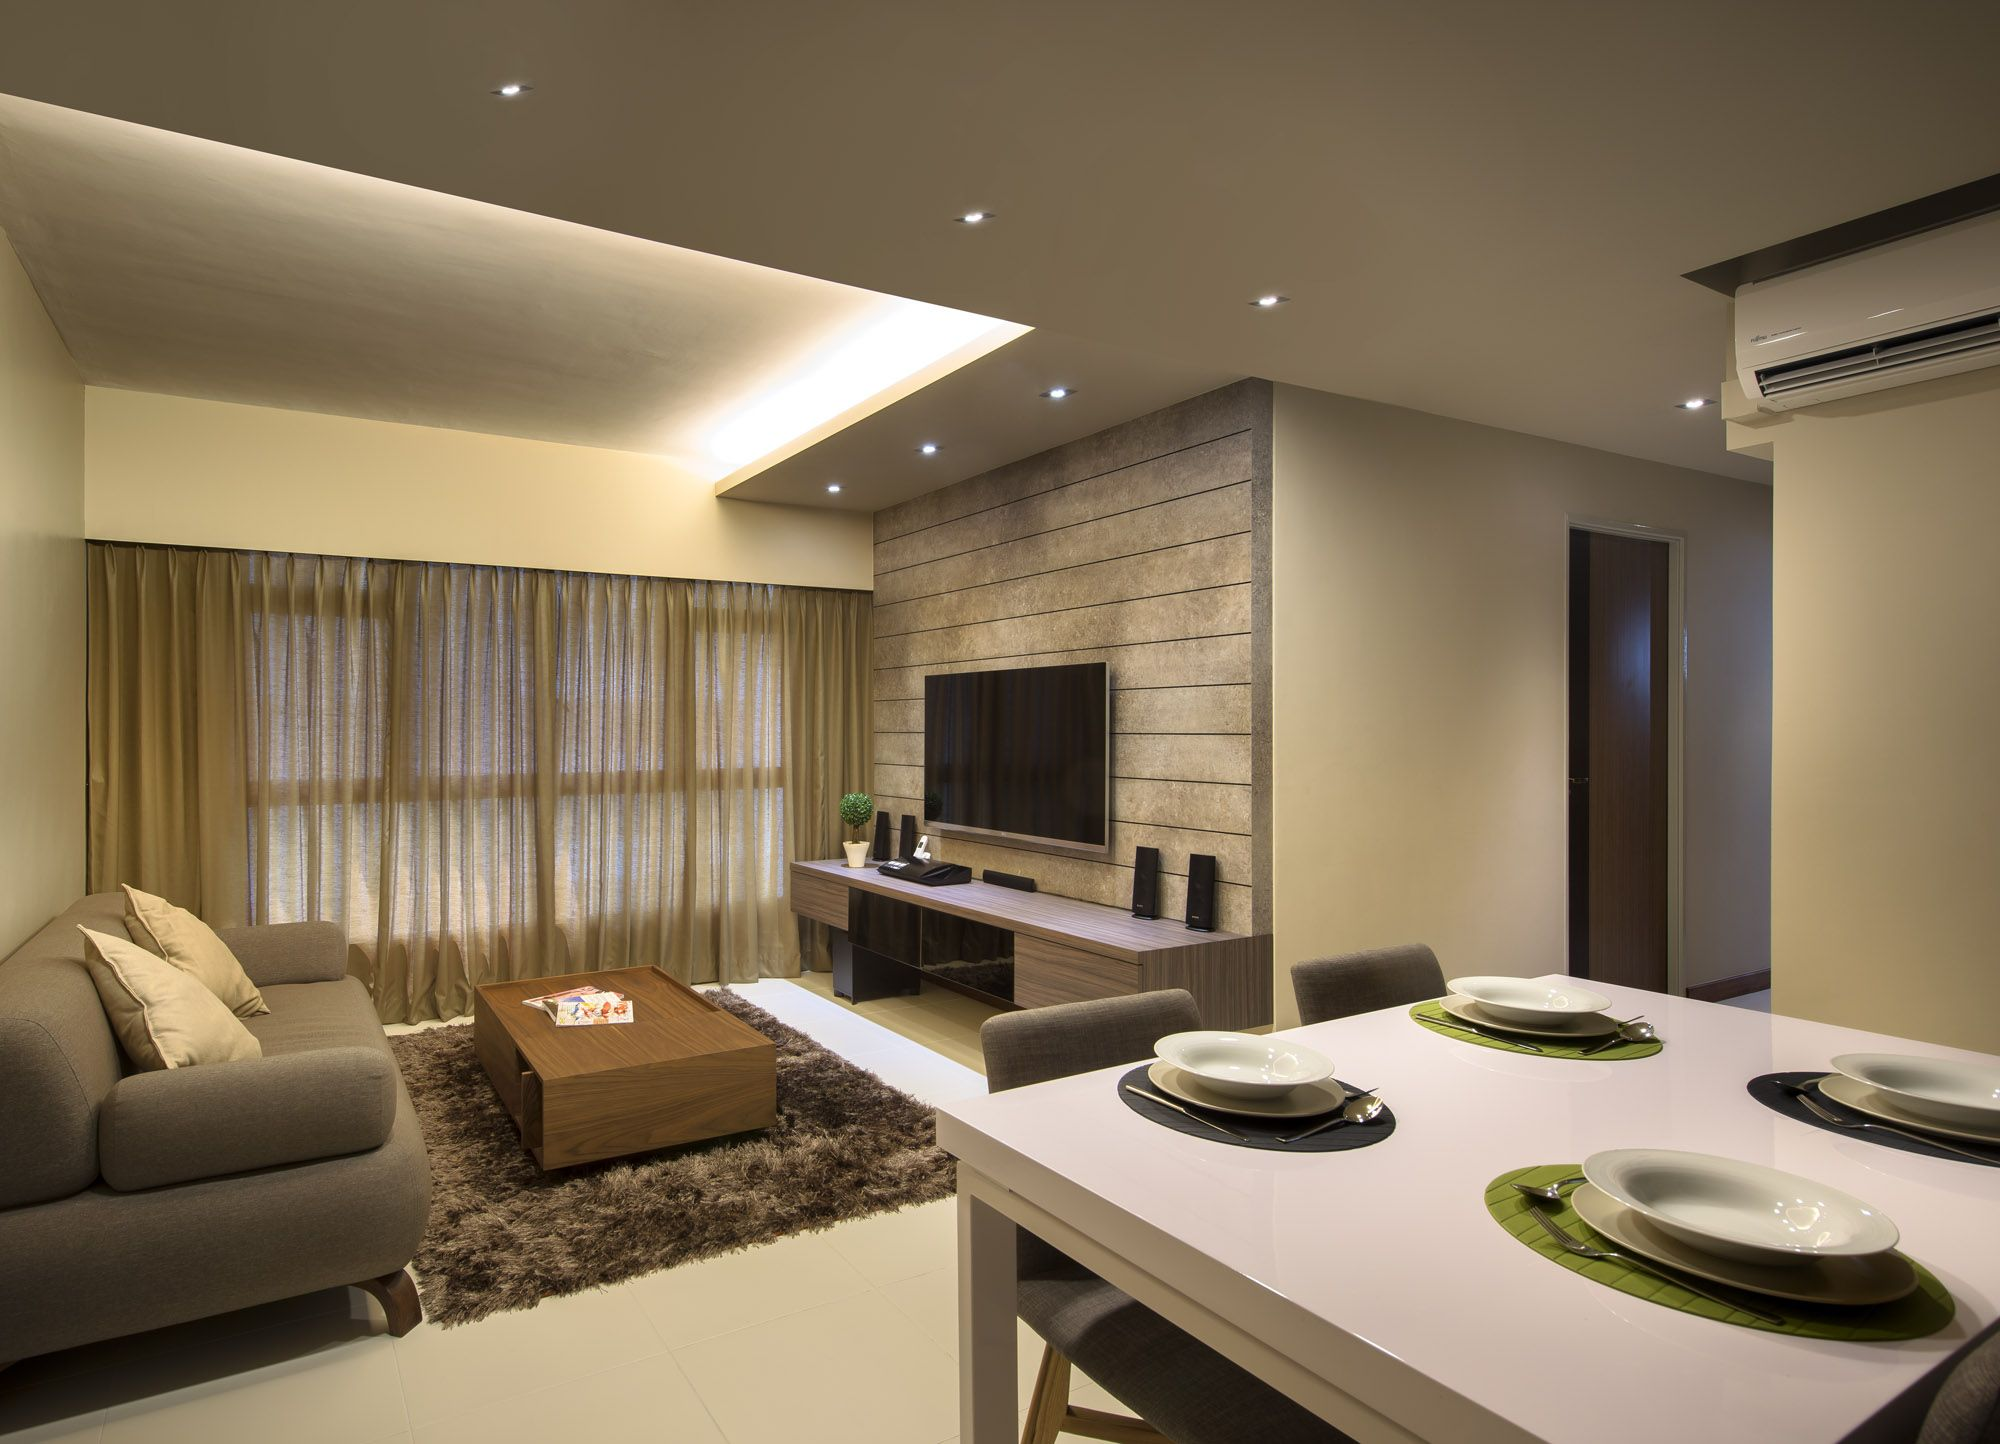 Rezt relax interior design and renovation singapore for 4 home decor